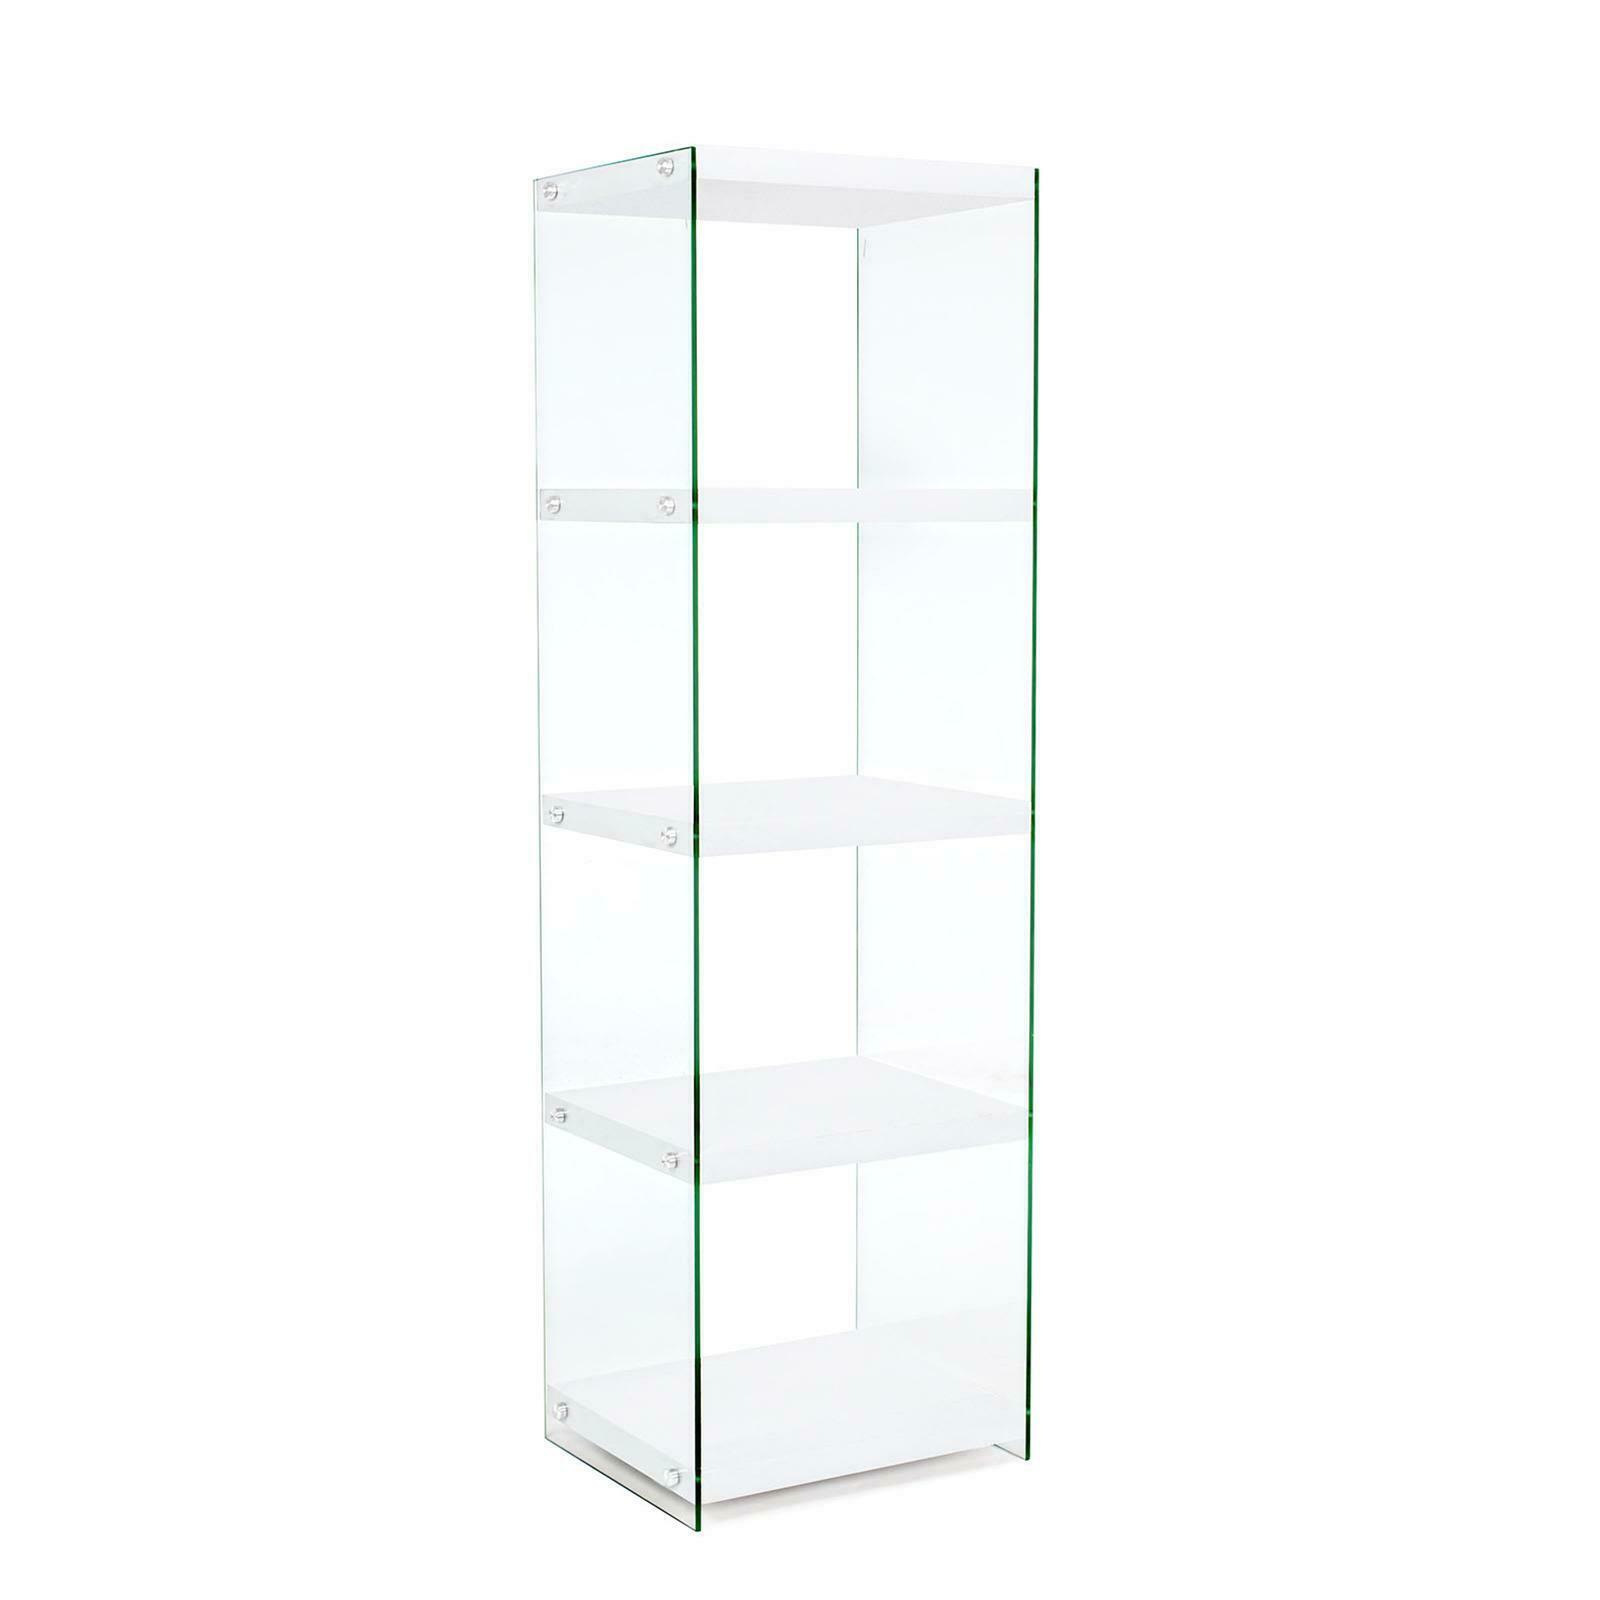 YES EVERYDAY CUBO C-MENSOLA COMPOSITE BIANCO LIBRERIE UNICA